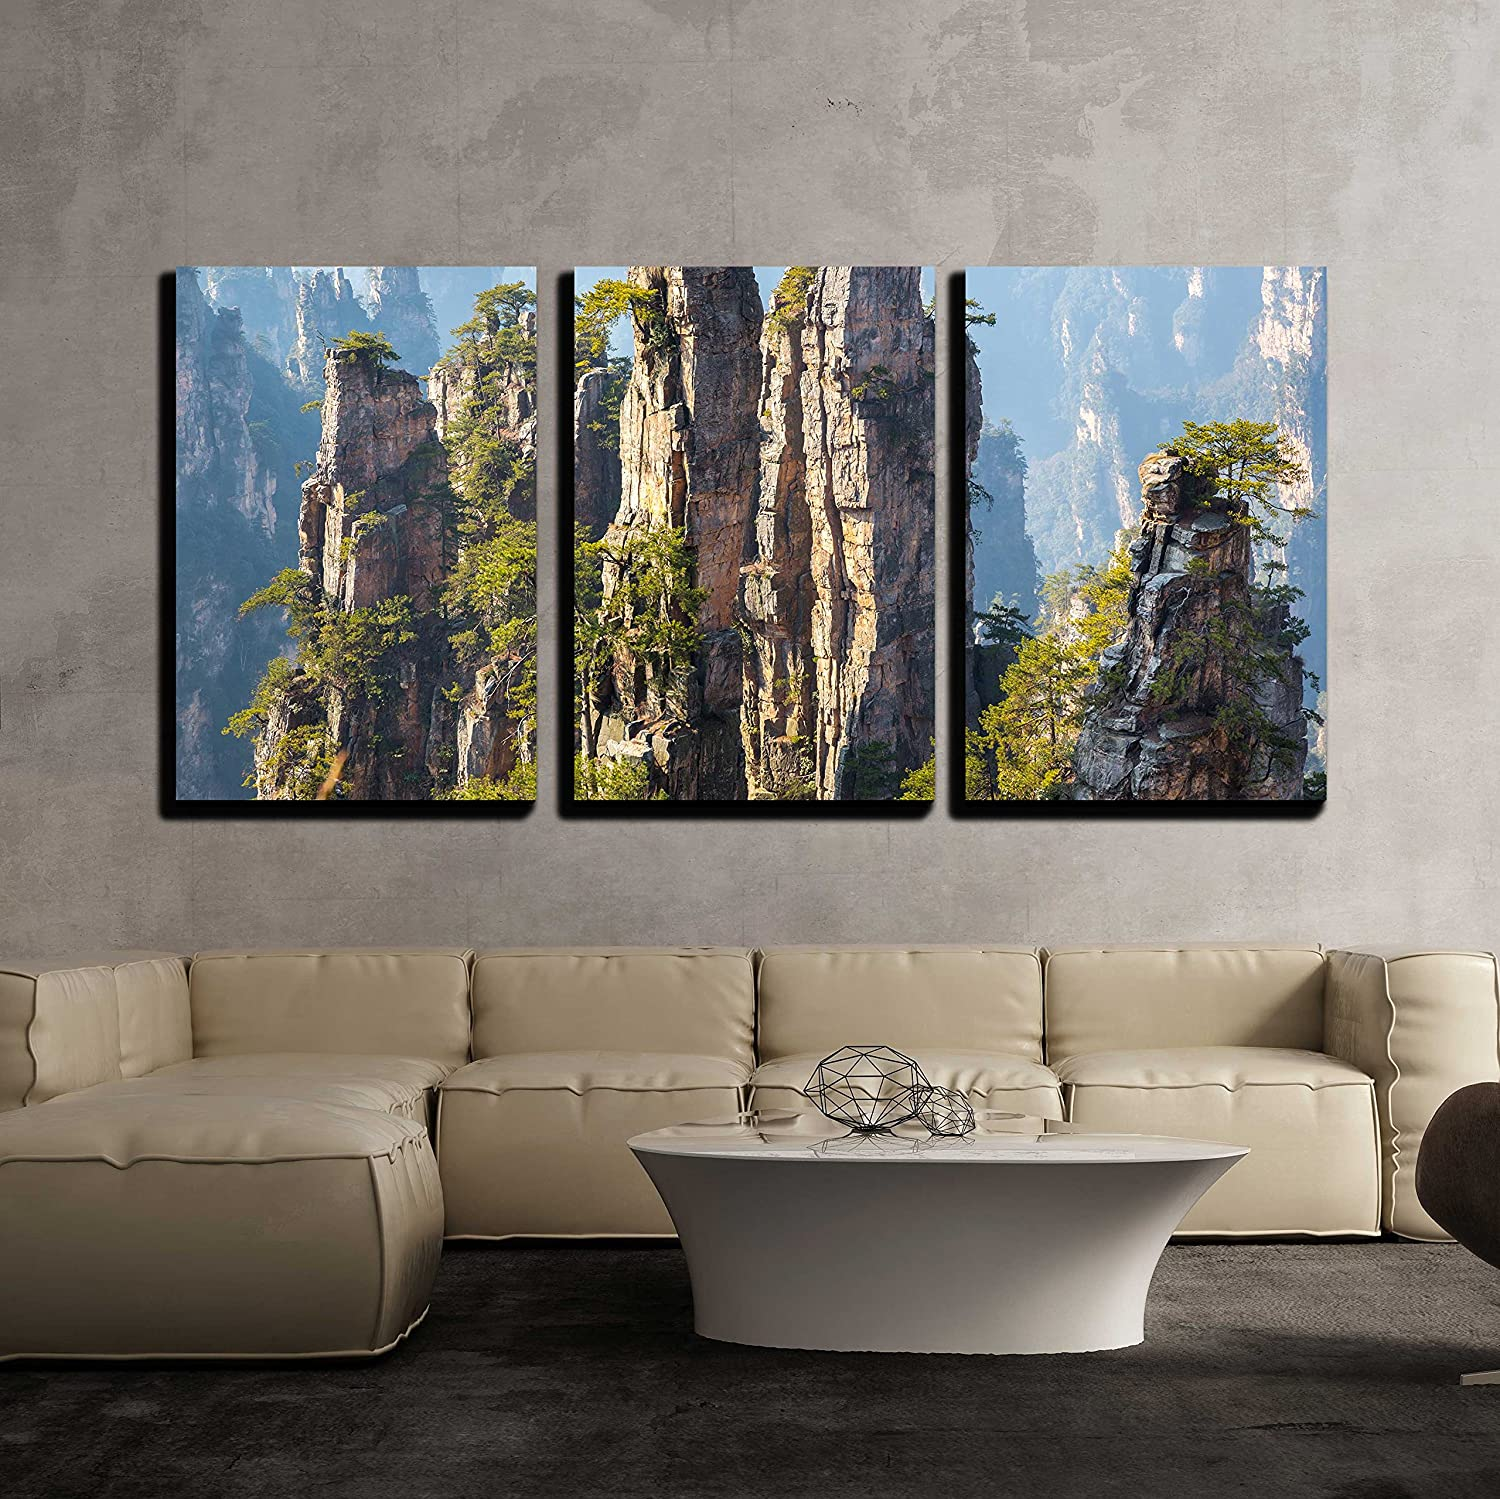 """wall26 - 3 Piece Canvas Wall Art - Zhangjiajie National Forest Park at Wulingyuan Hunan China - Modern Home Decor Stretched and Framed Ready to Hang - 24""""x36""""x3 Panels"""